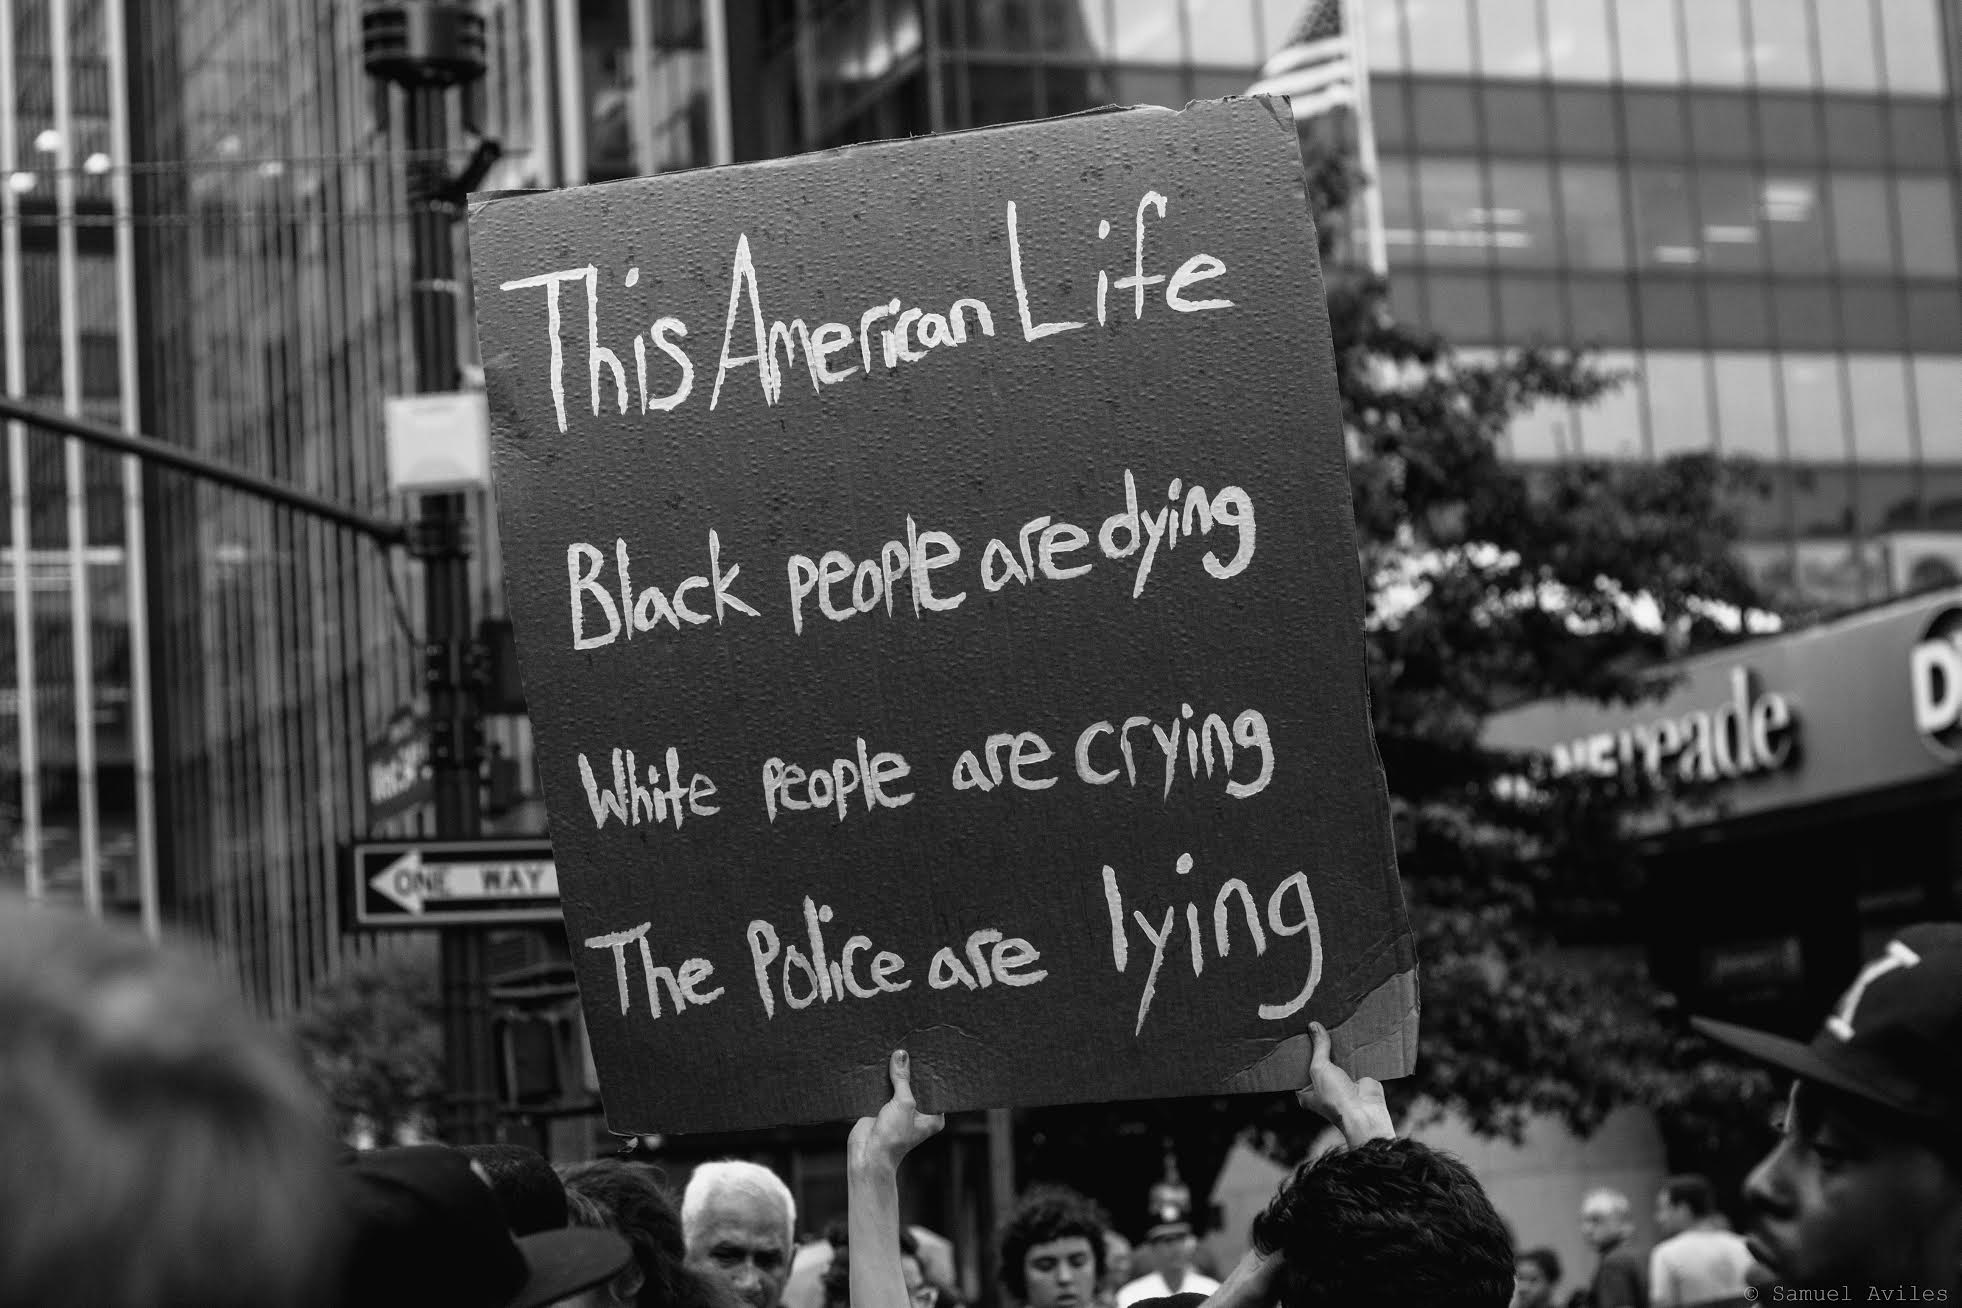 Sign at the July 7th protest against police brutality in Manhattan, New York. The sign references the innocent black people killed by police.